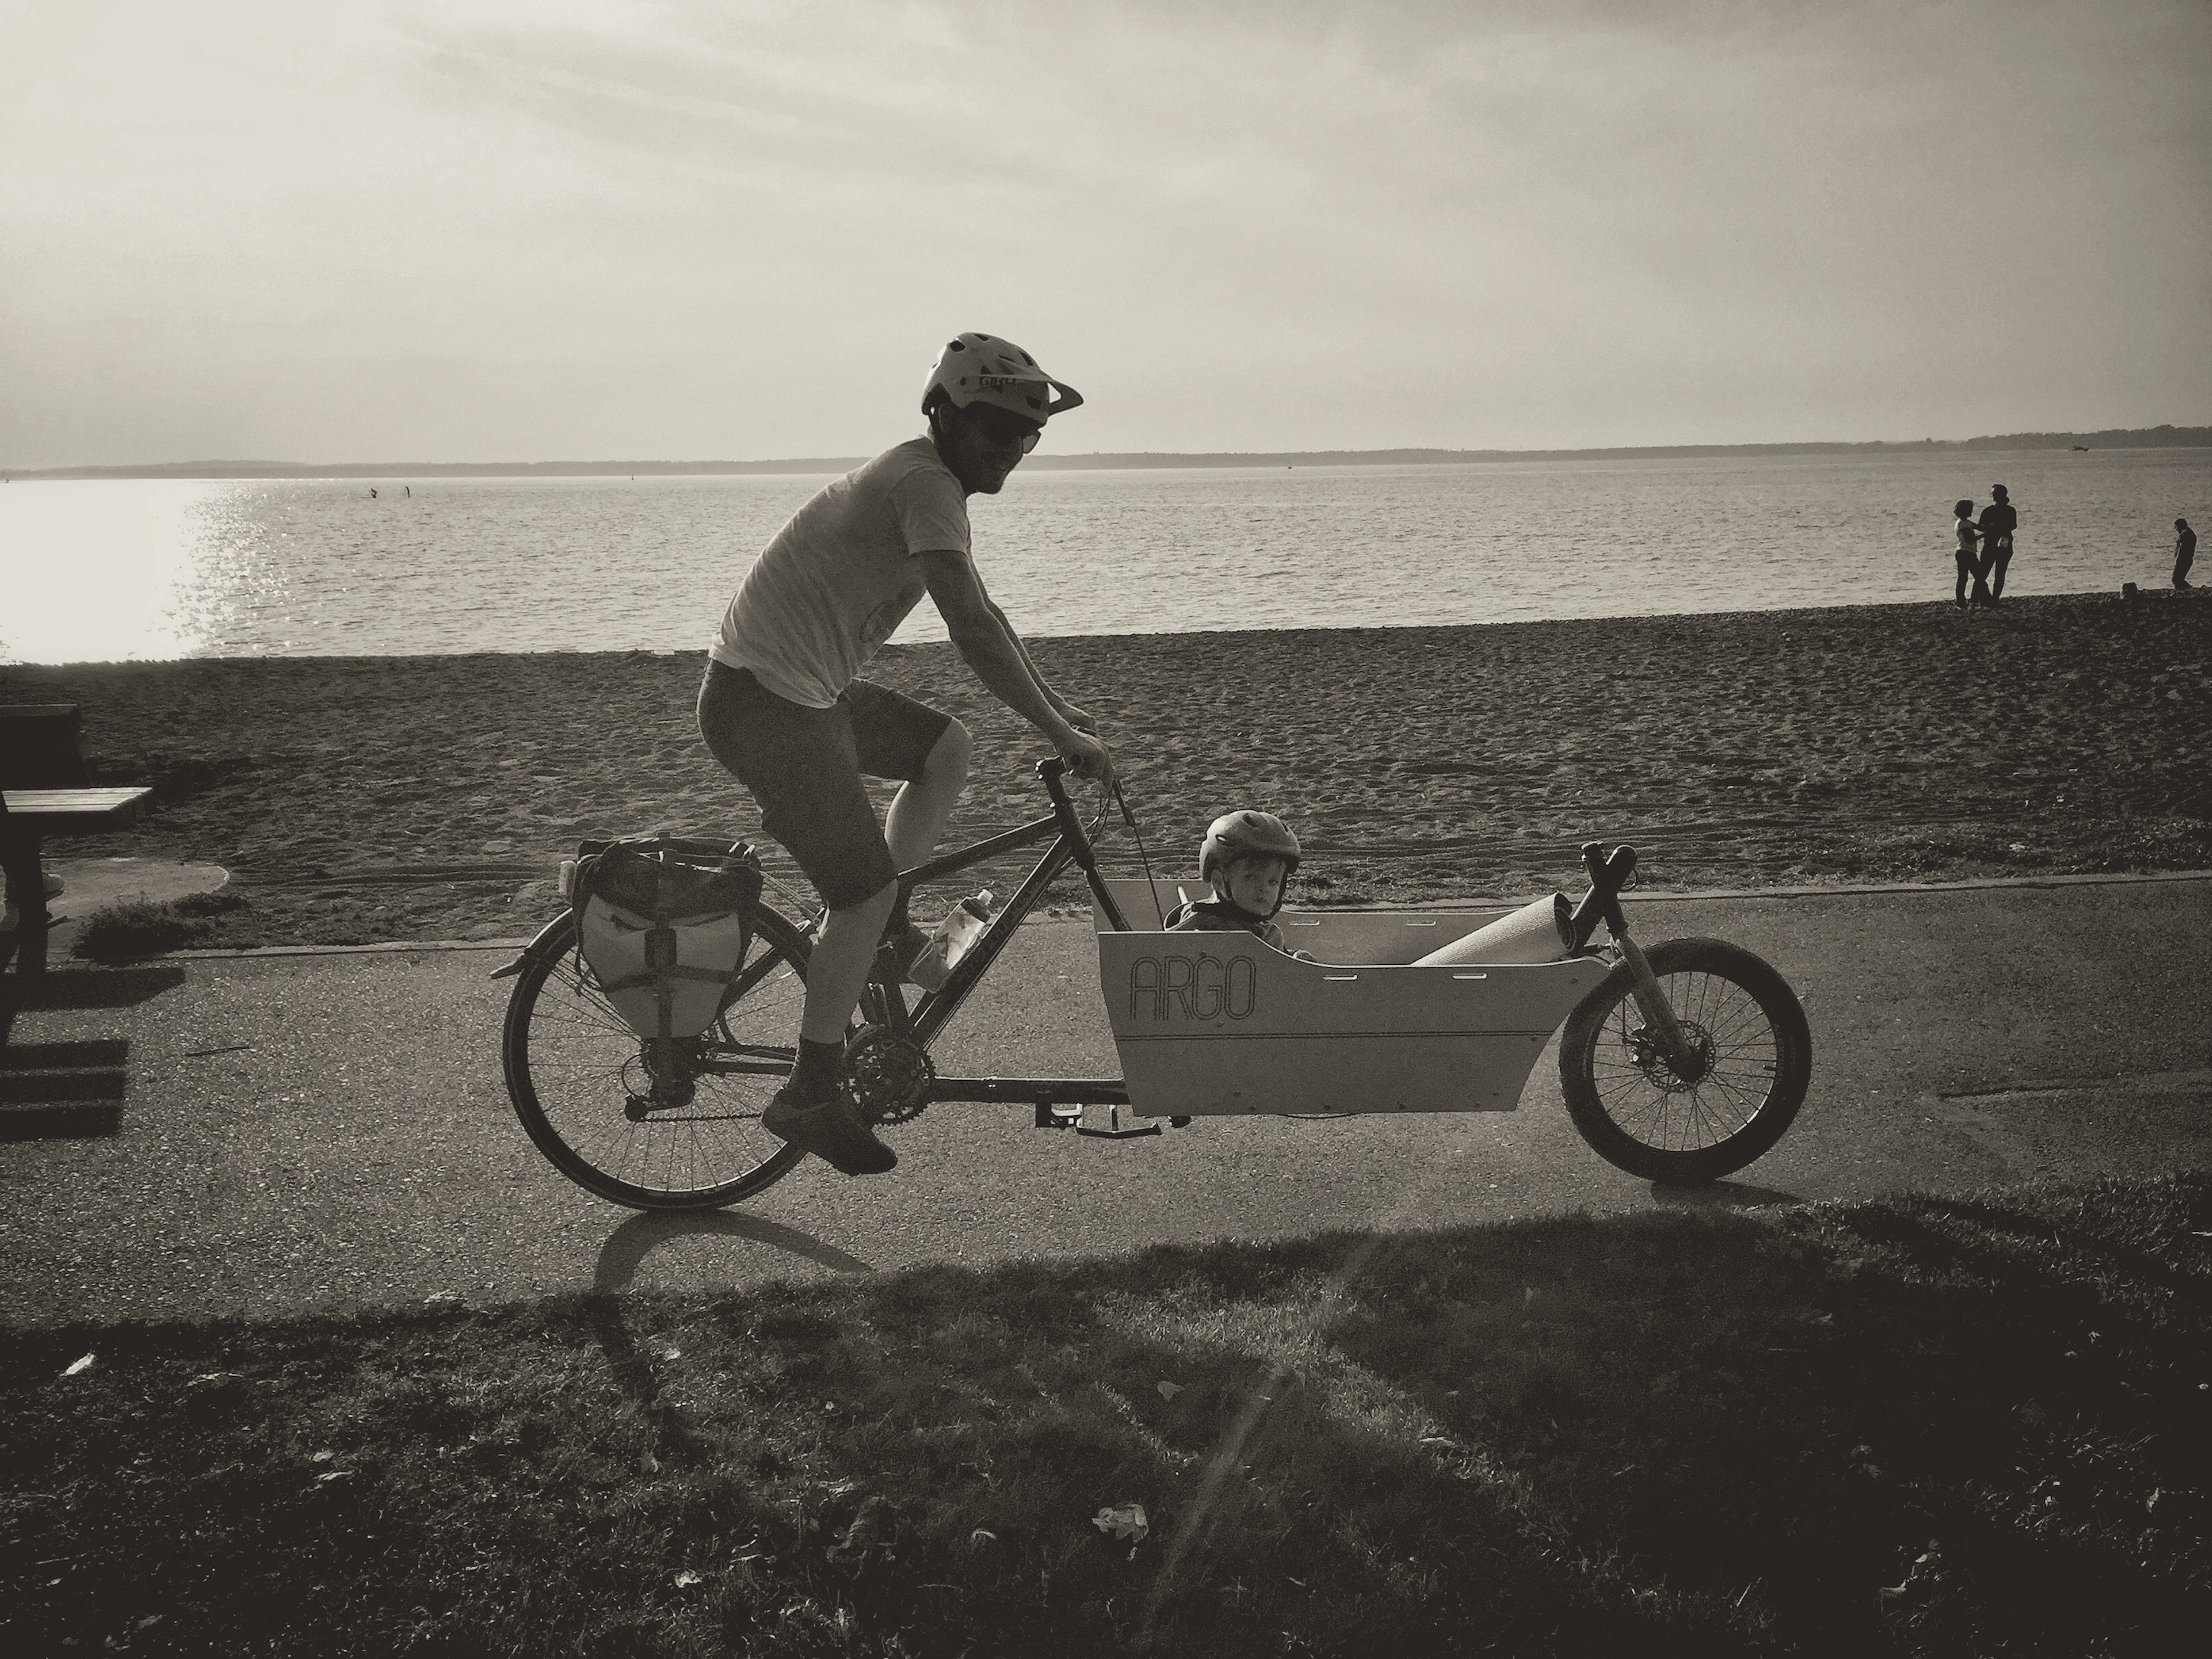 A Dew Reimagined Turns into the Ultimate Cargo Bike